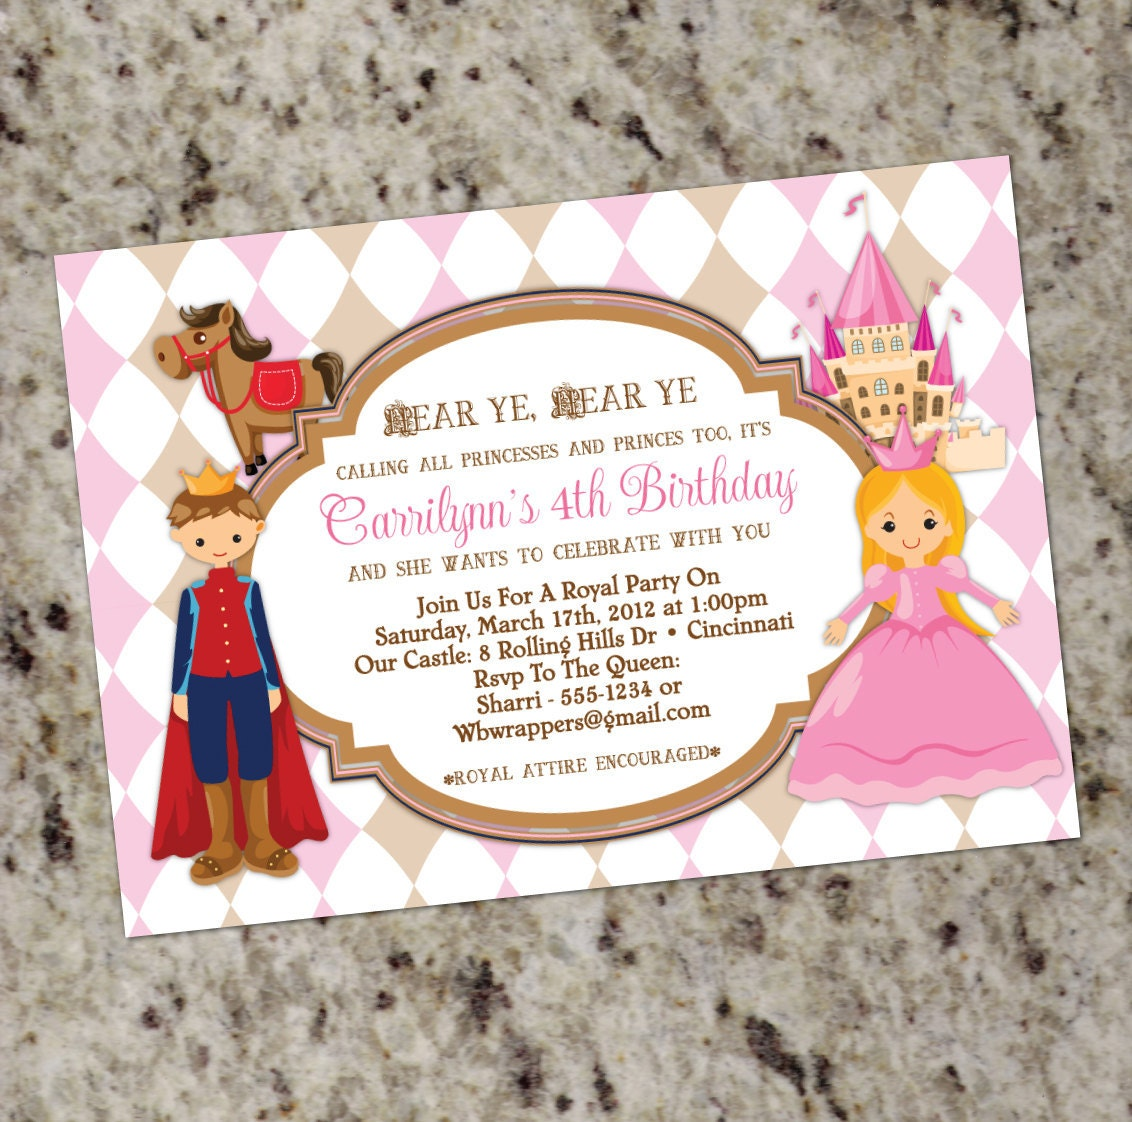 Princess and Prince Birthday Party Invitations Calling All | Etsy